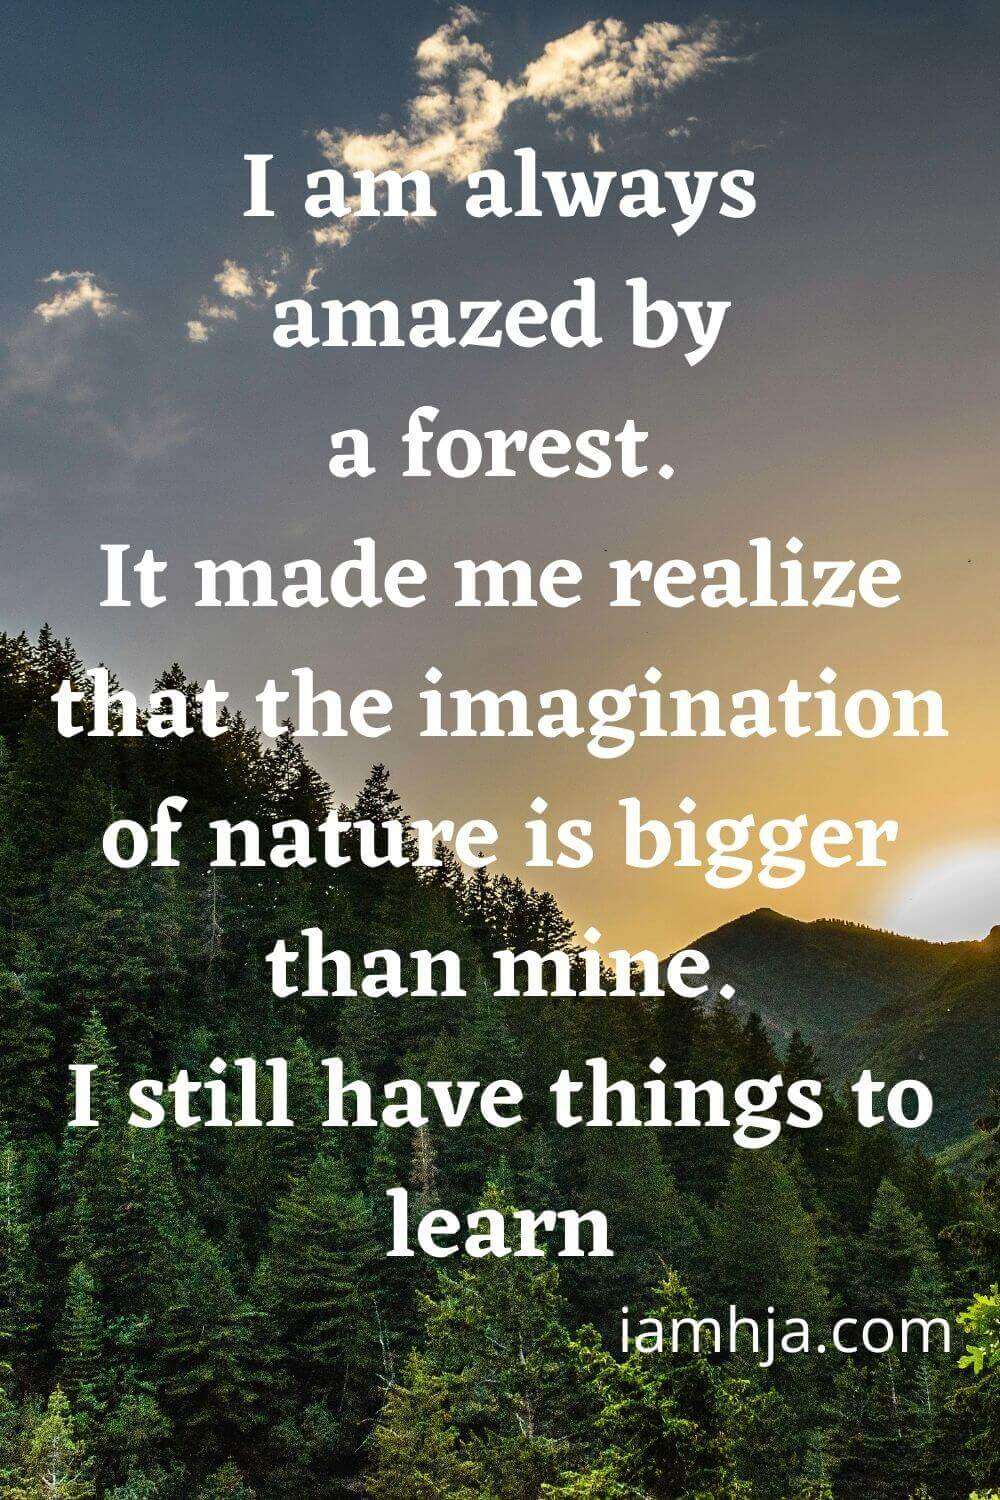 I am always amazed by a forest. It made me realize that the imagination of nature is bigger than mine. I still have things to learn